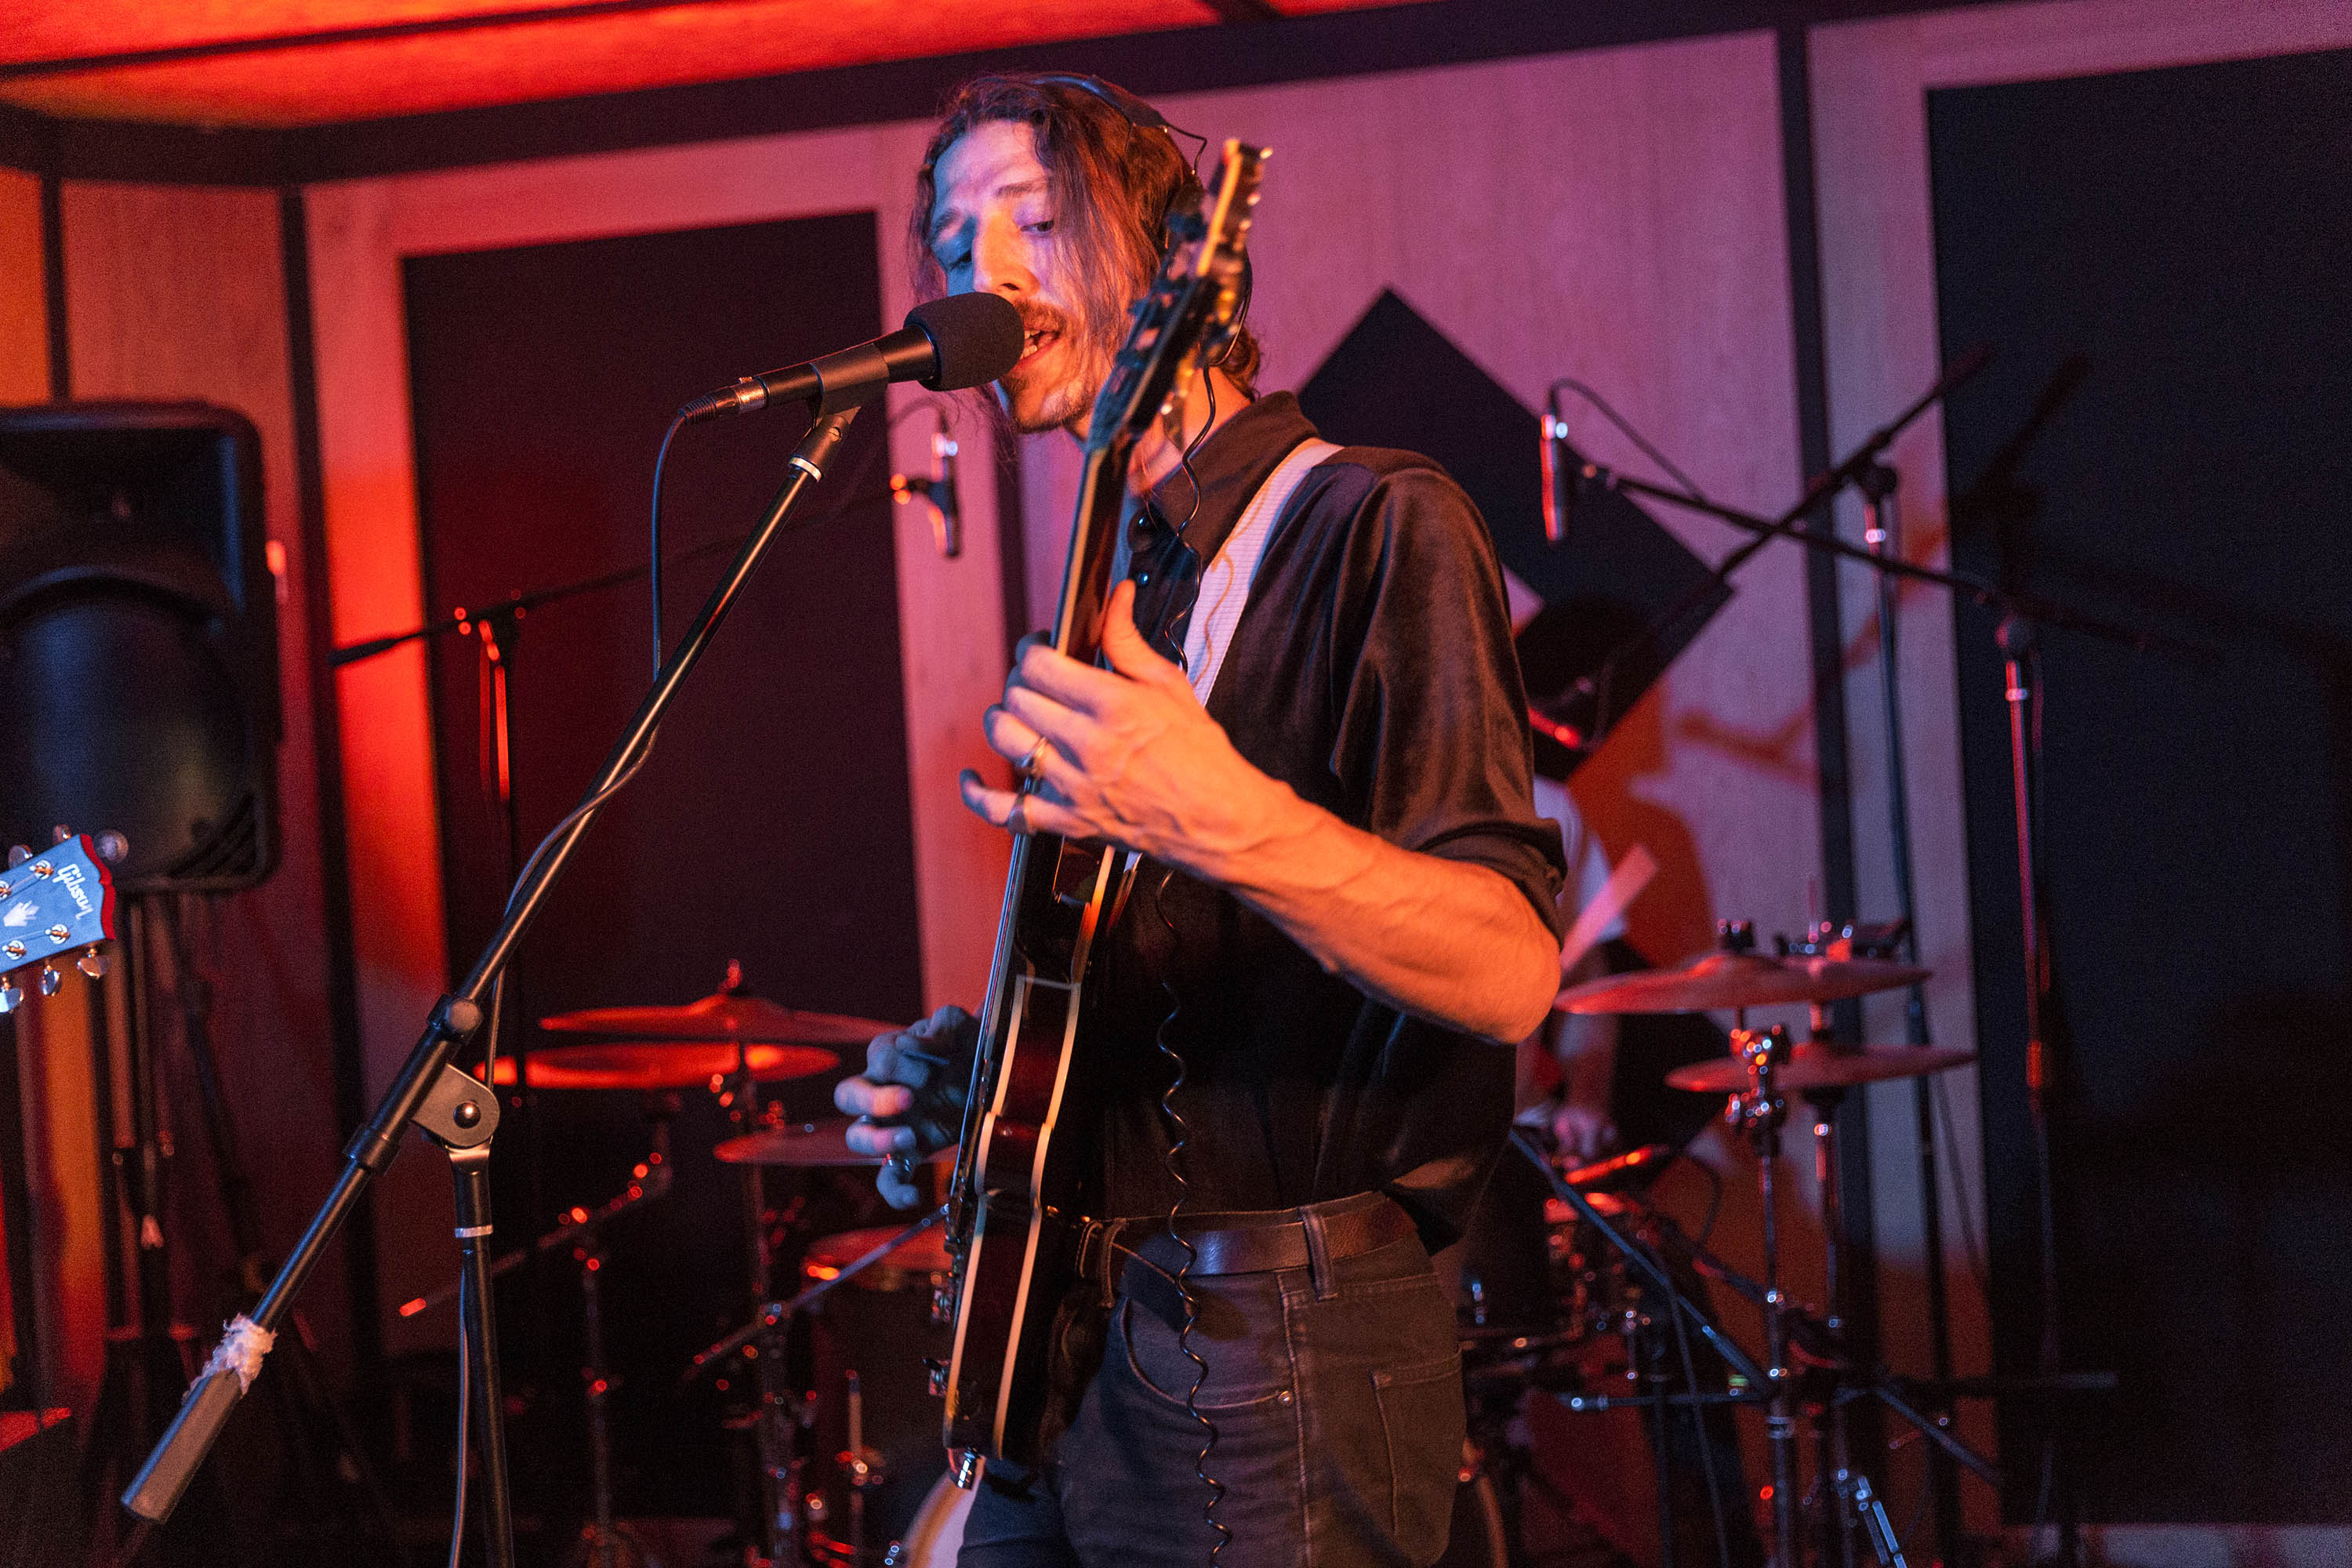 Watch Demob Happy play new material for Pirate Studios & DIY Presents live session